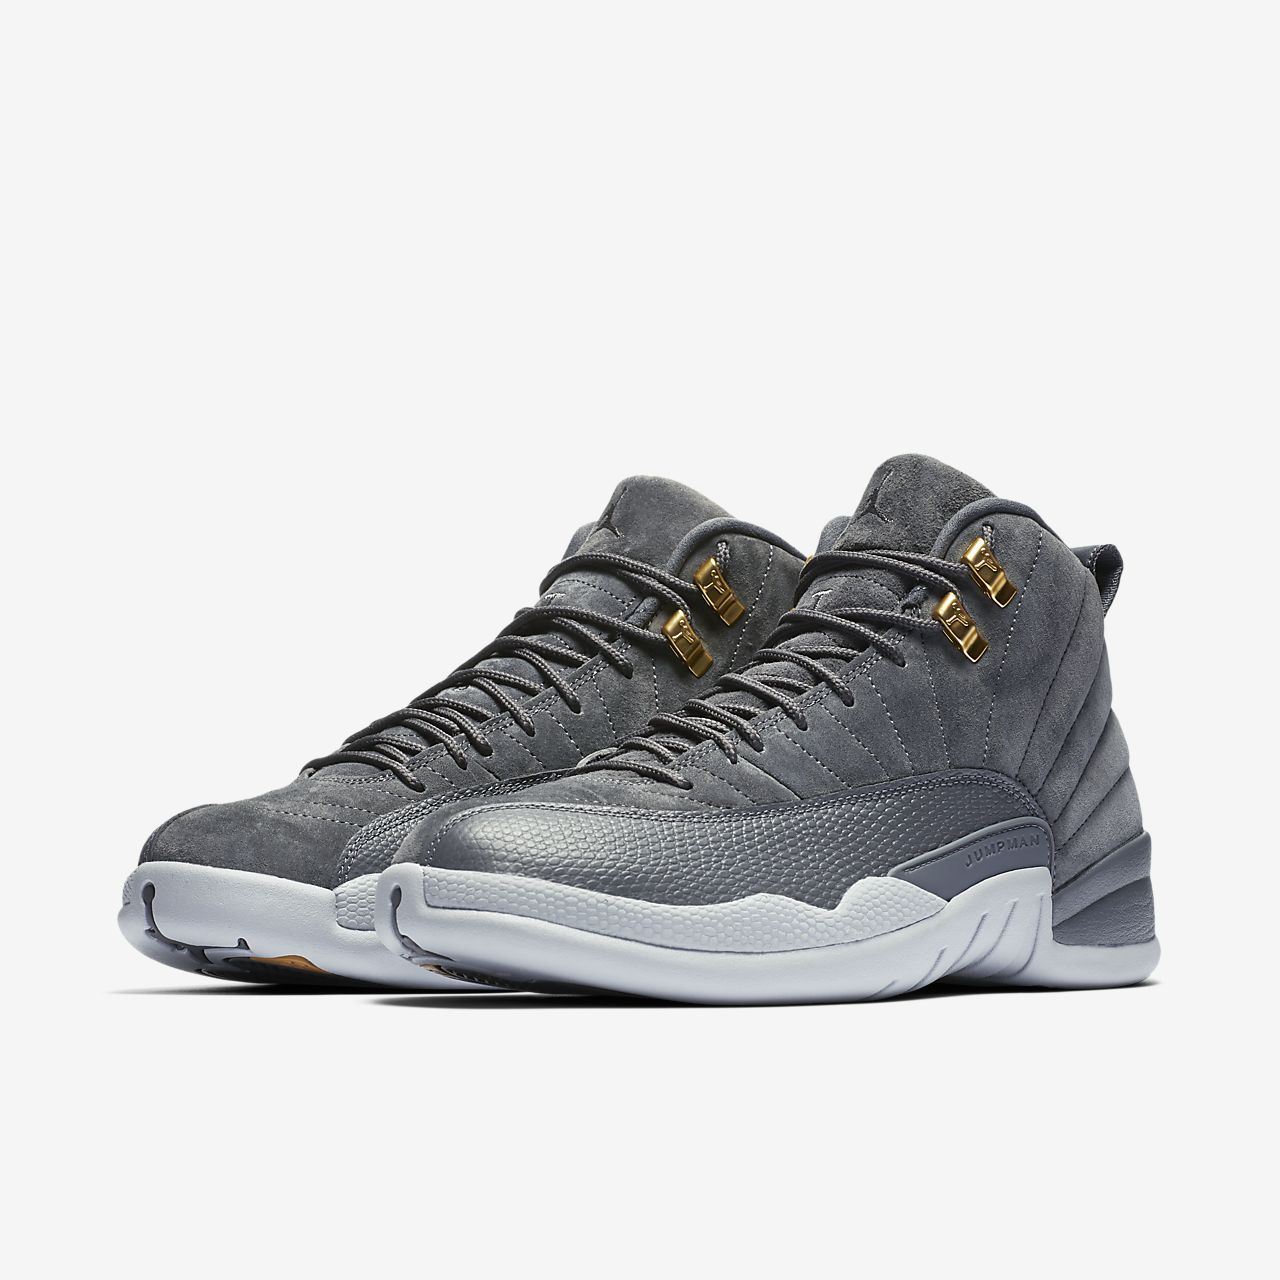 53ec20c48f6 Air Jordan 12 Retro Men s Shoe